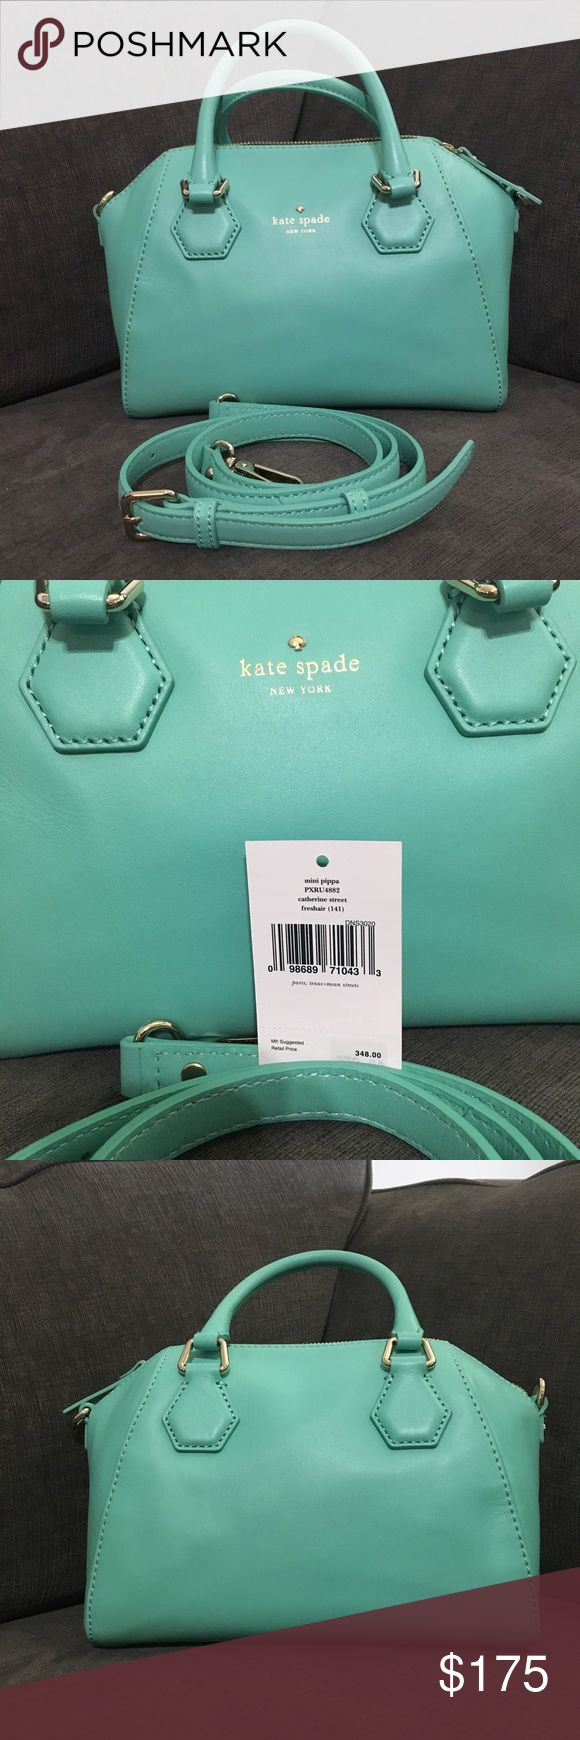 EEUC Catherine St. mini Pippa (fresh air) EEUC Catherine Street, mini Pippa bag in fresh air . Single zipper opening; double short straps for arm carry and long strap for short carry included. Please see all pictures for dimensions and wear. Smoke free, pet friendly home. Offers welcome! kate spade Bags